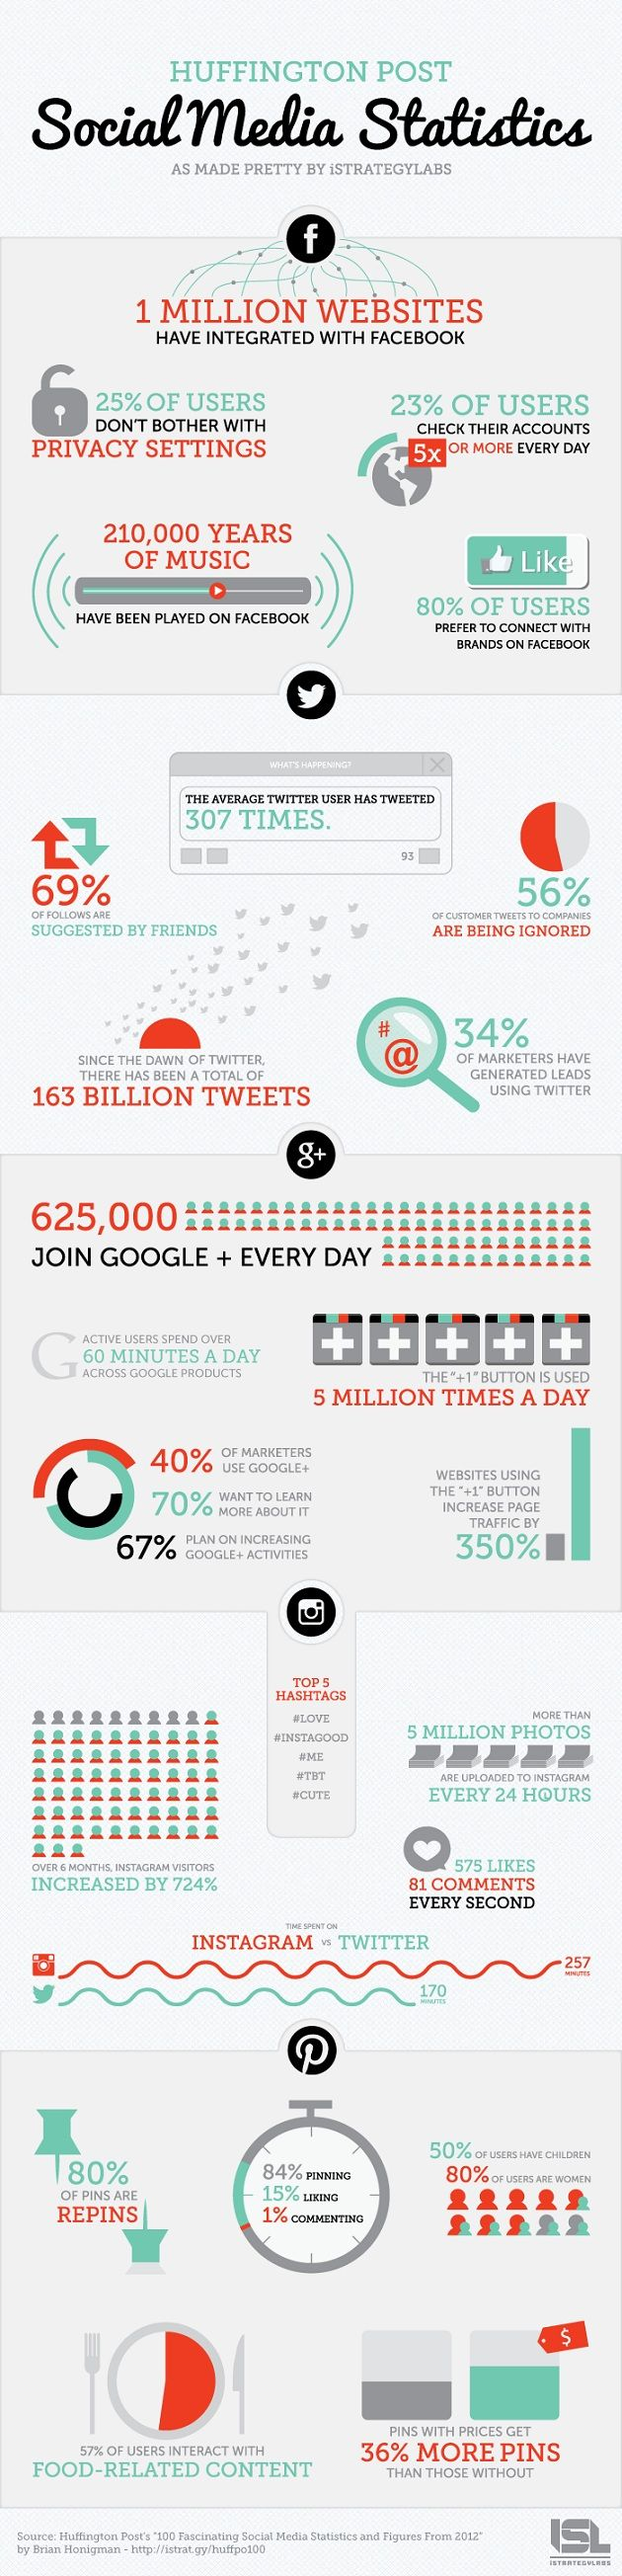 """Infographic: 365 Days of Social Media http://www.pcmag.com/article2/0,2817,2413807,00.asp A new infographic from iStrategyLabs, based on statistics published by the Huffington Post, lists 100 of """"the most fascinating"""" figures from 2012, focusing on Facebook, Twitter, Pinterest, Instagram, and Google+."""